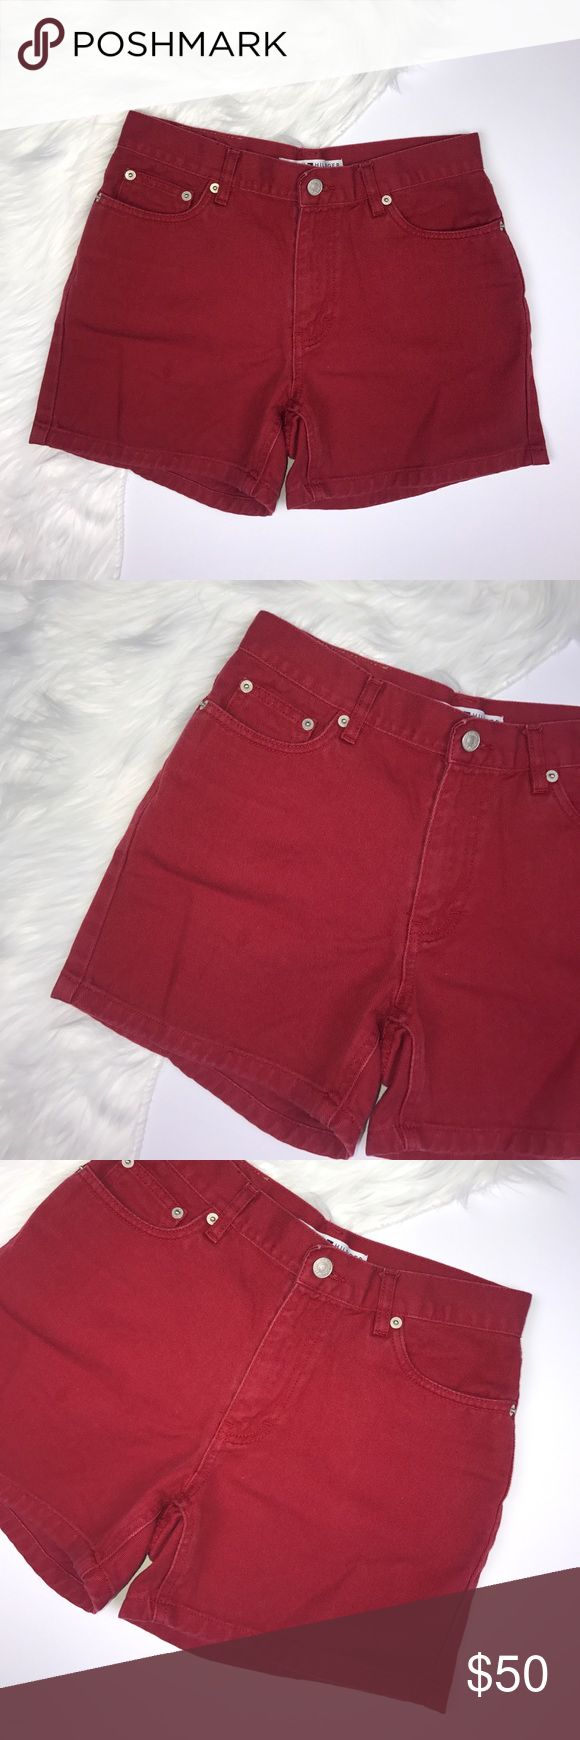 """Tommy Hilfiger Vintage Jean Red Mom Shorts. Super cute and stylish Tommy Hilfiger mom shorts. Dress these up or down. They're in great pre-owned condition, some light fading throughout. 5 pockets. Zip-fly w/ button closure. Logo on the back right pocket. Waist: 13.5"""" (laying flat). Length: 13"""". Rise: 9.25"""". Tommy Hilfiger Shorts Jean Shorts"""